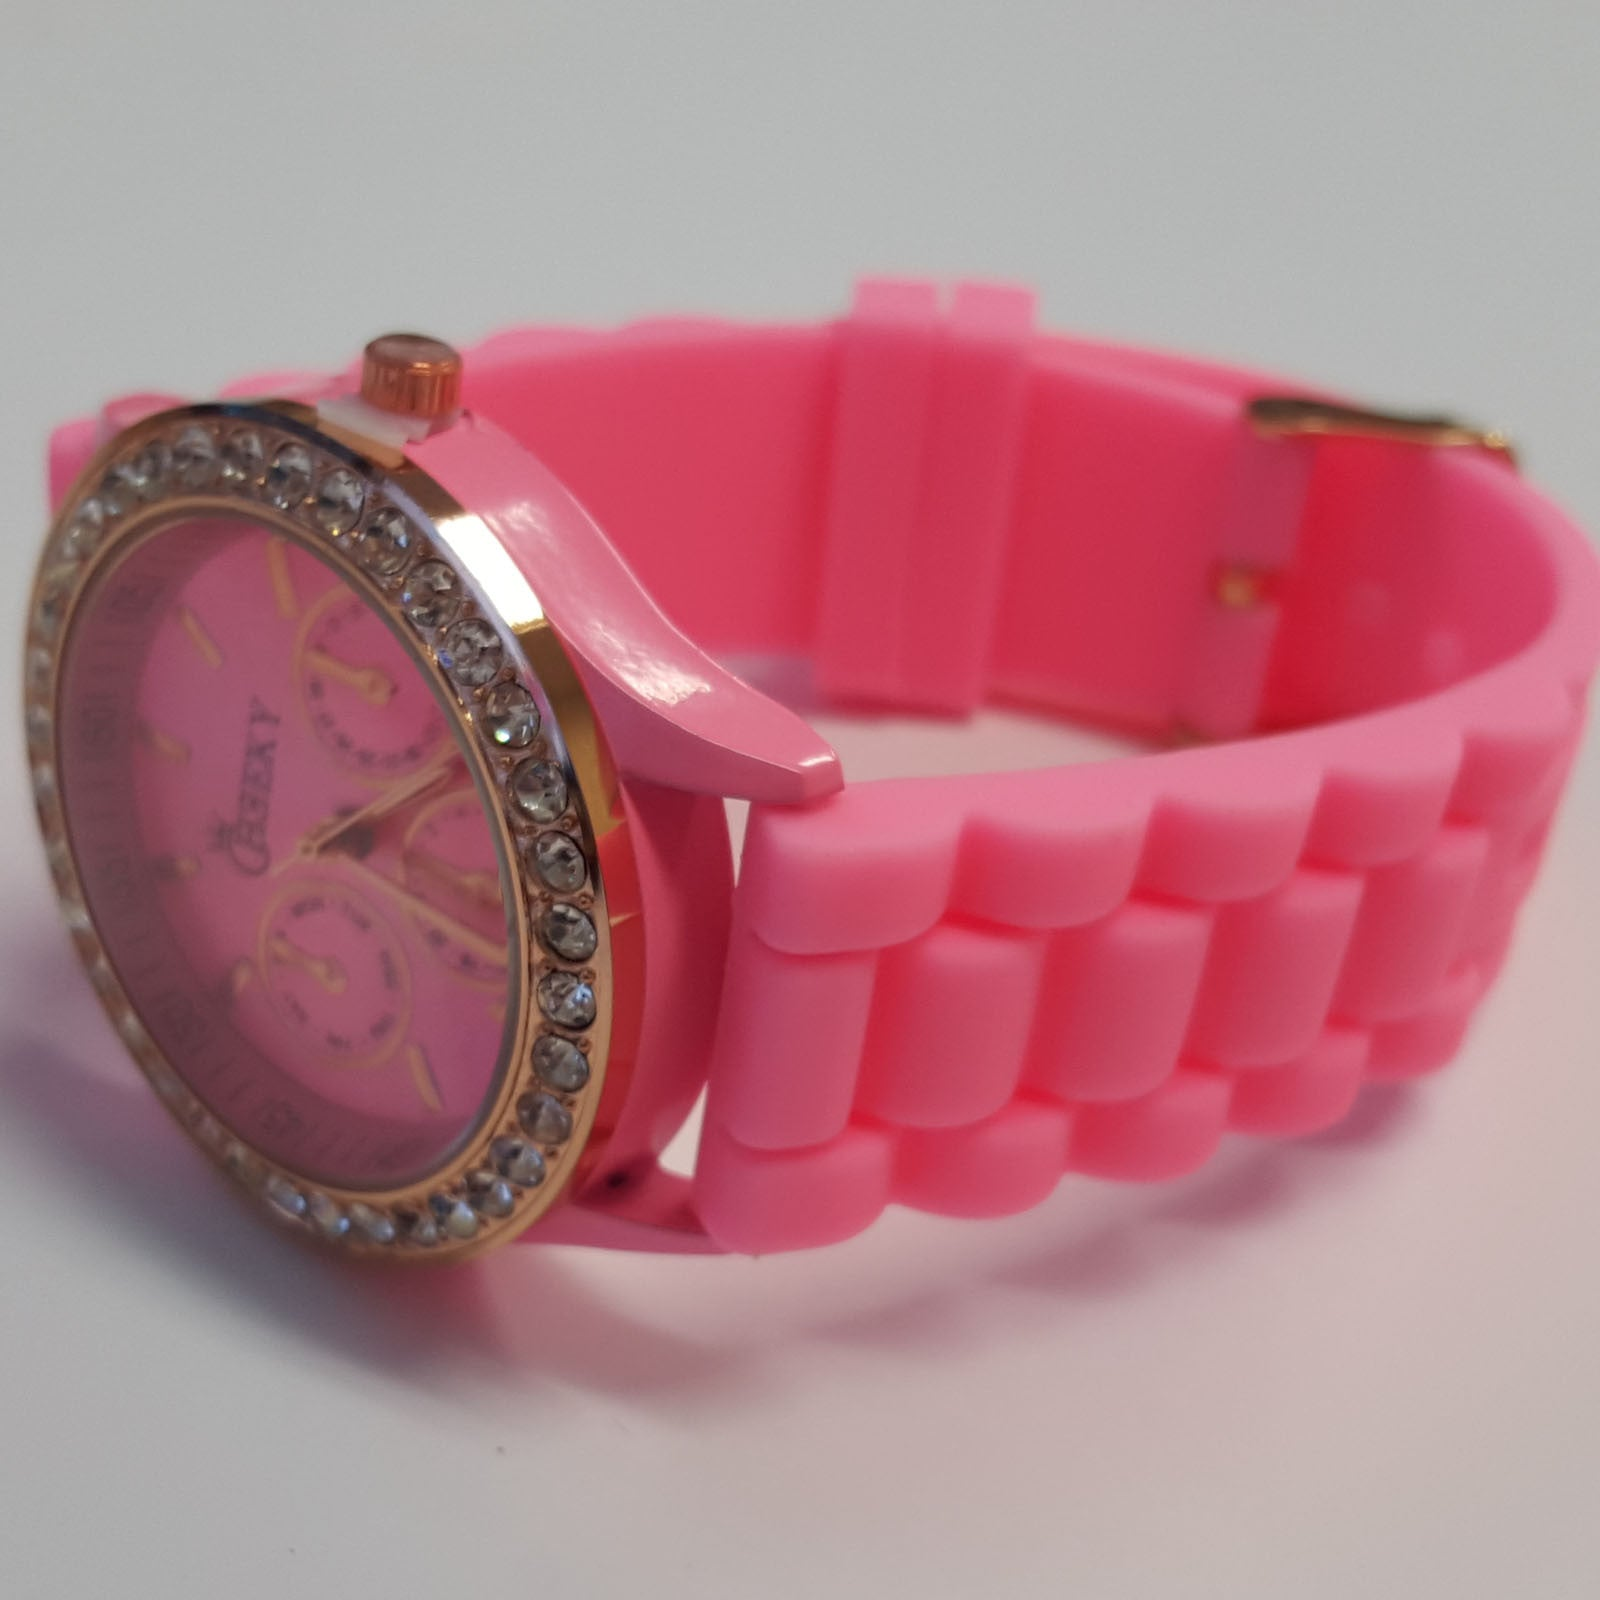 faux face cheap large watch cheeky ladies watches layer analogue leather products womens pink mens